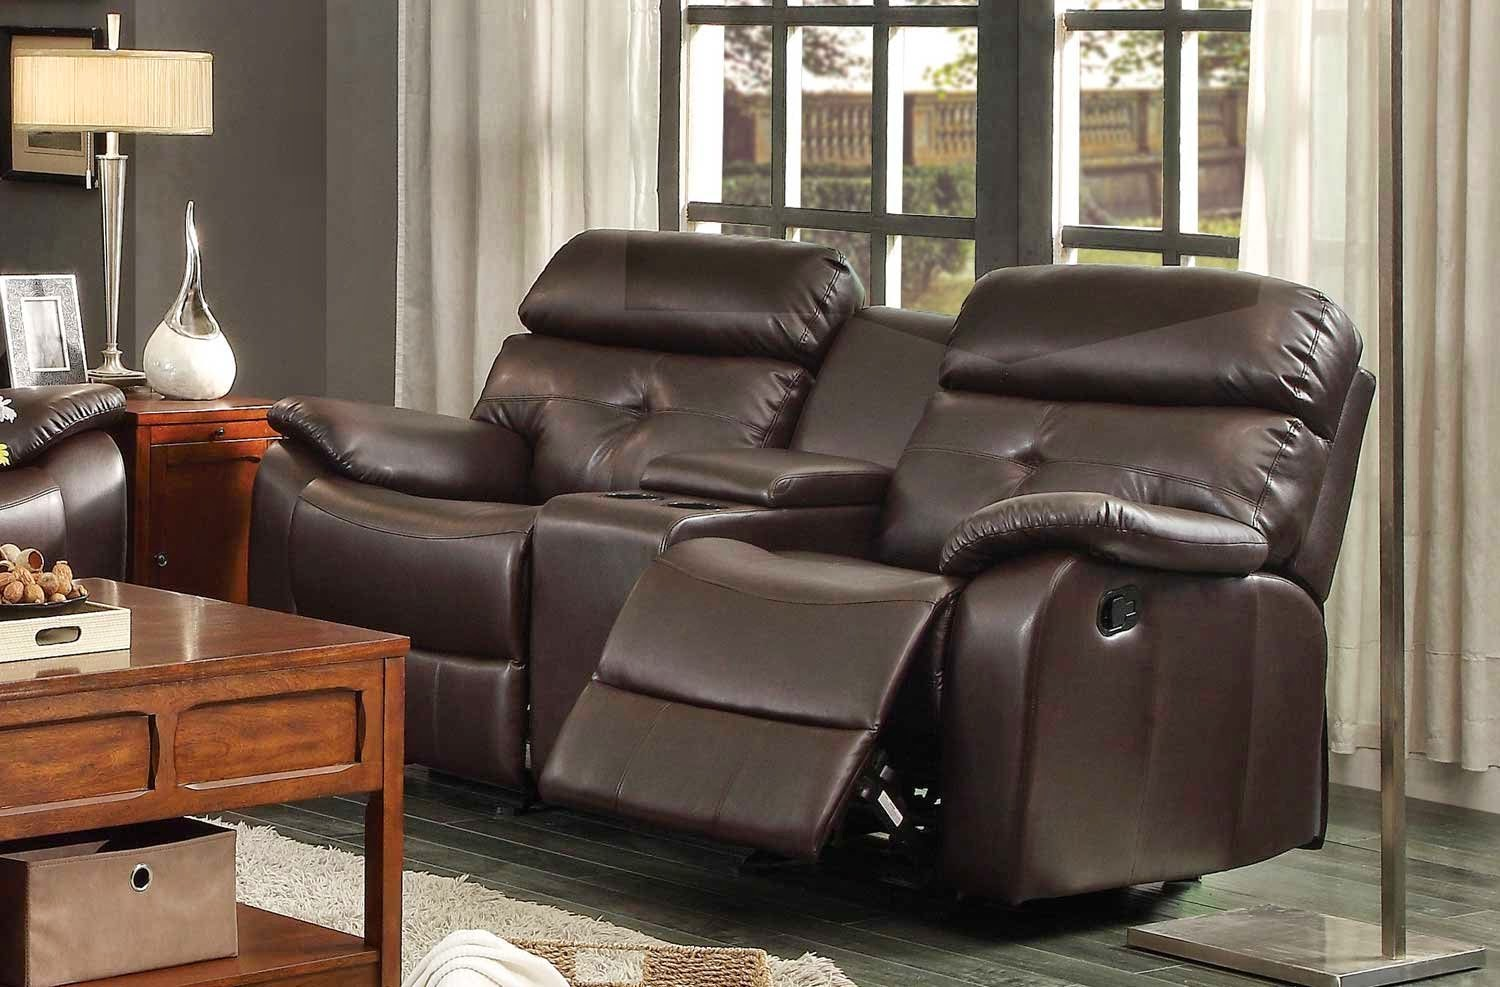 Homelegance Dark Brown 2 Seat Reclining Leather Sofa : 2 seat reclining leather sofa - islam-shia.org